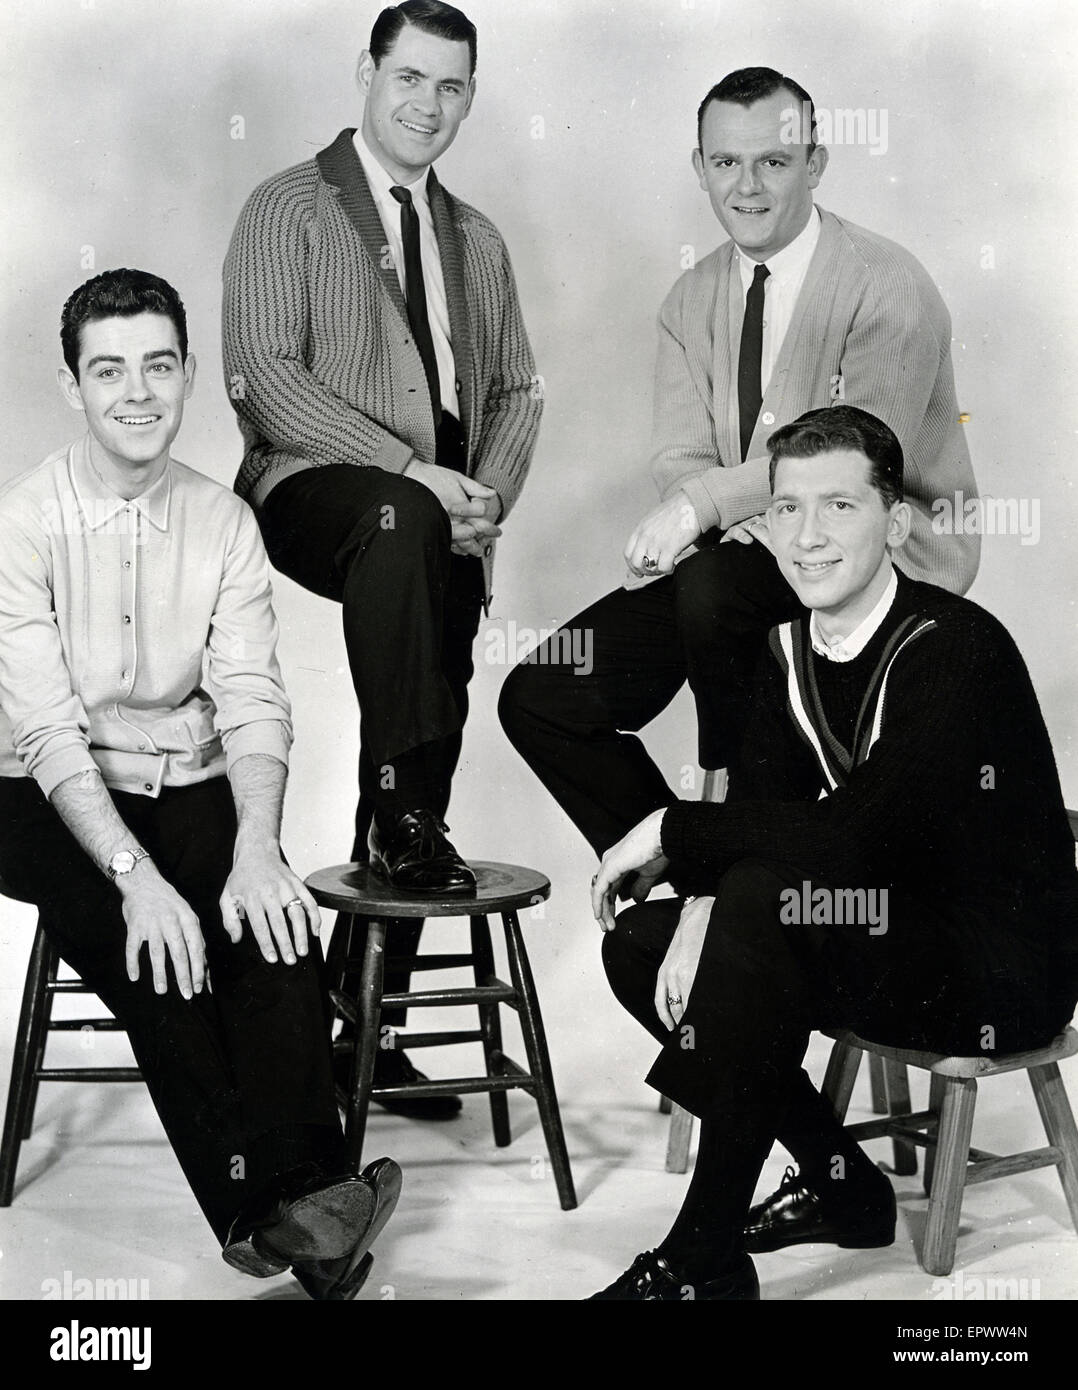 FOUR SAINTS US vocal group about 1962 - Stock Image